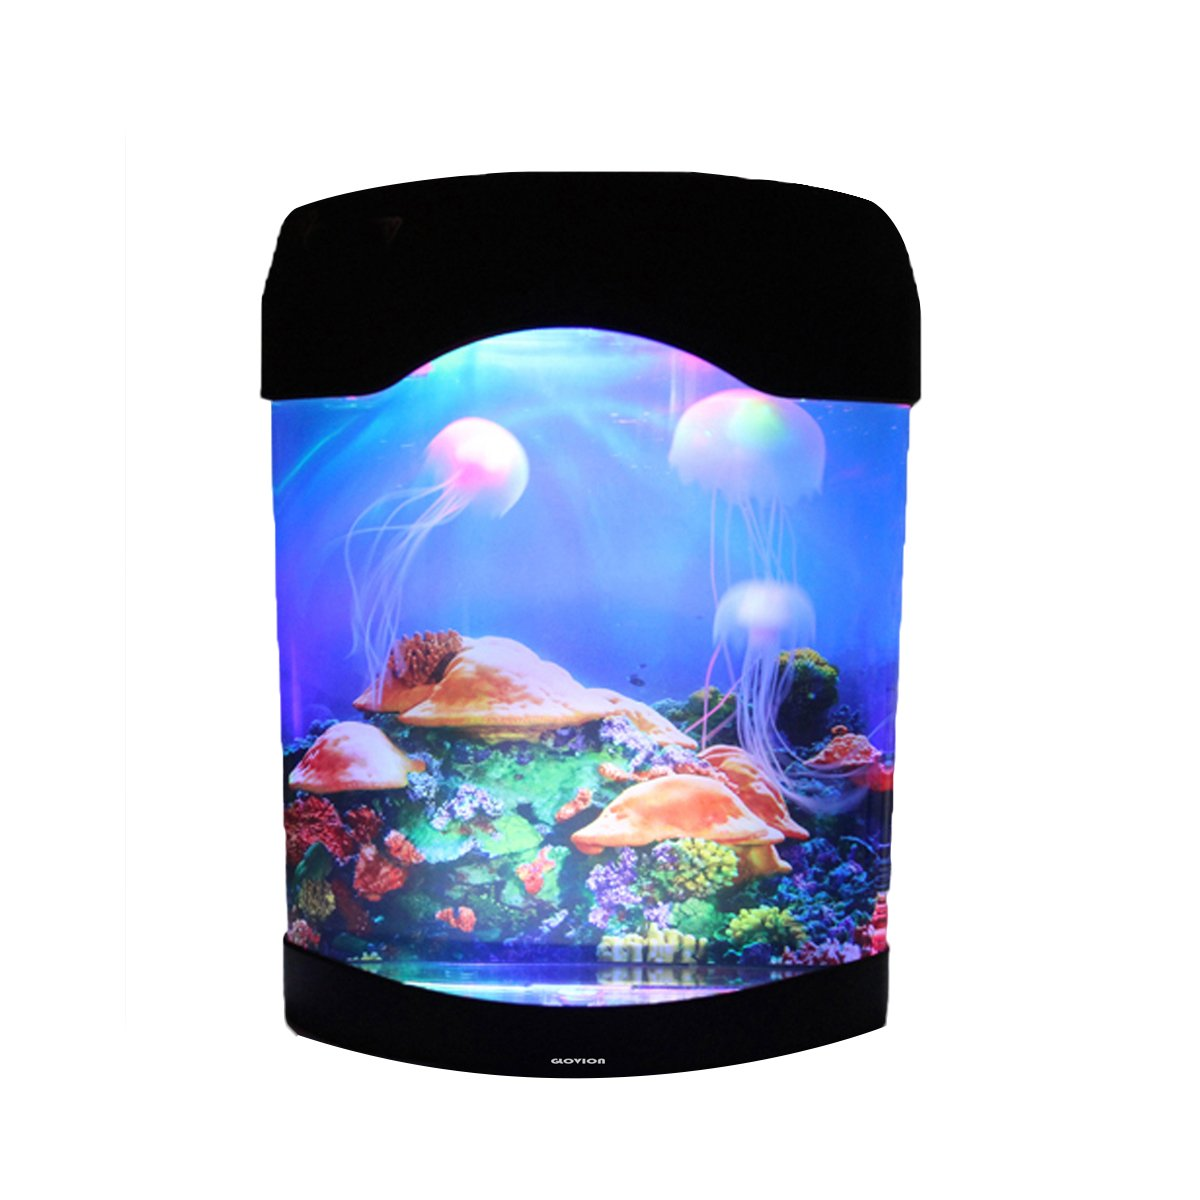 Glovion Silicone Jellyfish Aquarium LED Colorful Night Light Emitting Electronic Light up Tank Simulation of Deep Sea…